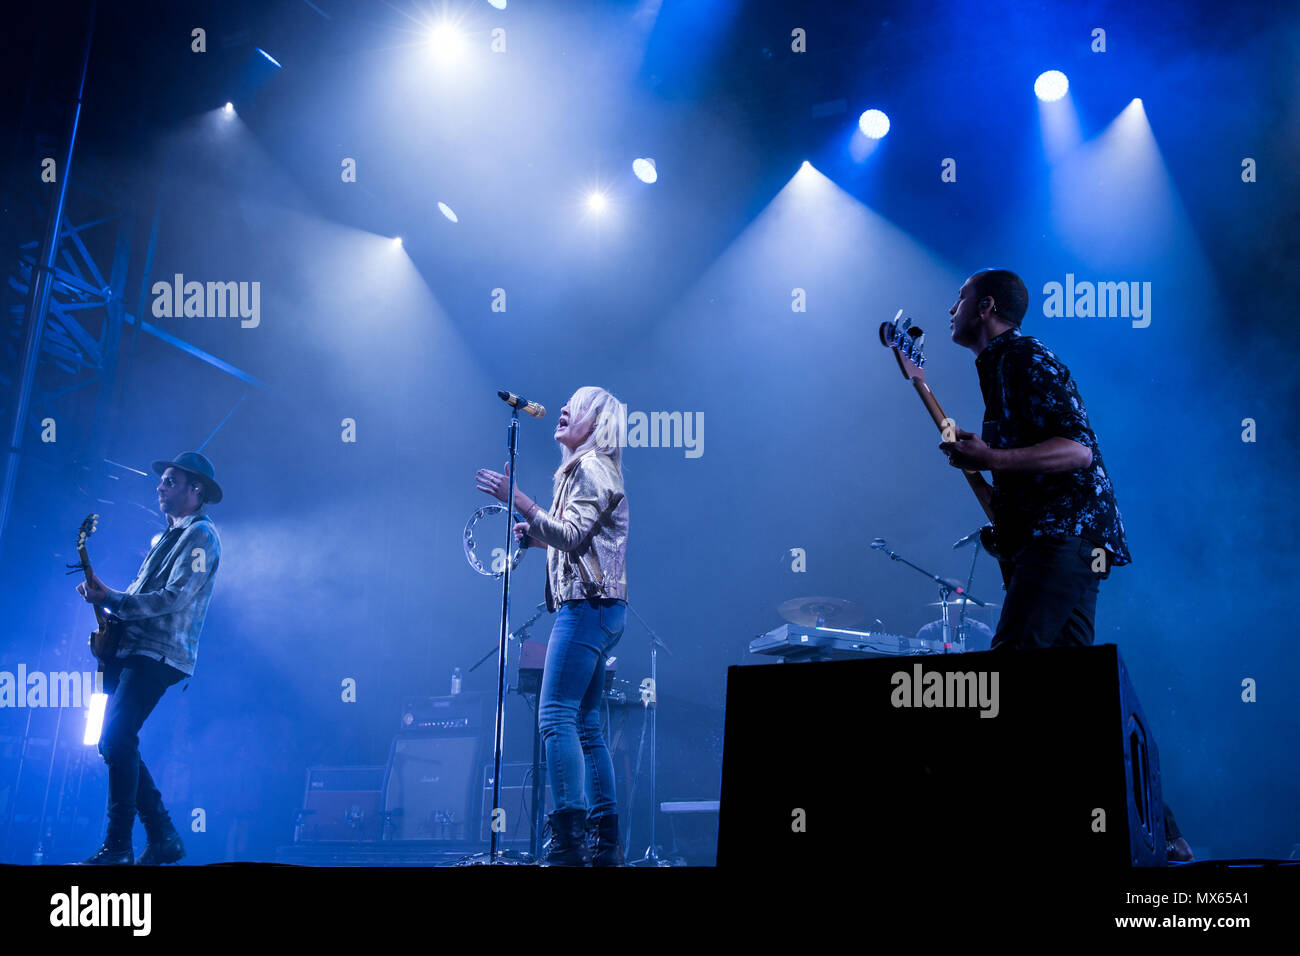 Toronto, CANADA. 02nd June 2018, Jimmy Shaw, Emily Haines and Joshua Winstead of Canadian Pop Rock band Metric performas at the 2018 Field Trip Music & Arts Festival in Toronto. Credit: Bobby Singh/Alamay Live News Credit: topconcertphoto/Alamy Live News - Stock Image